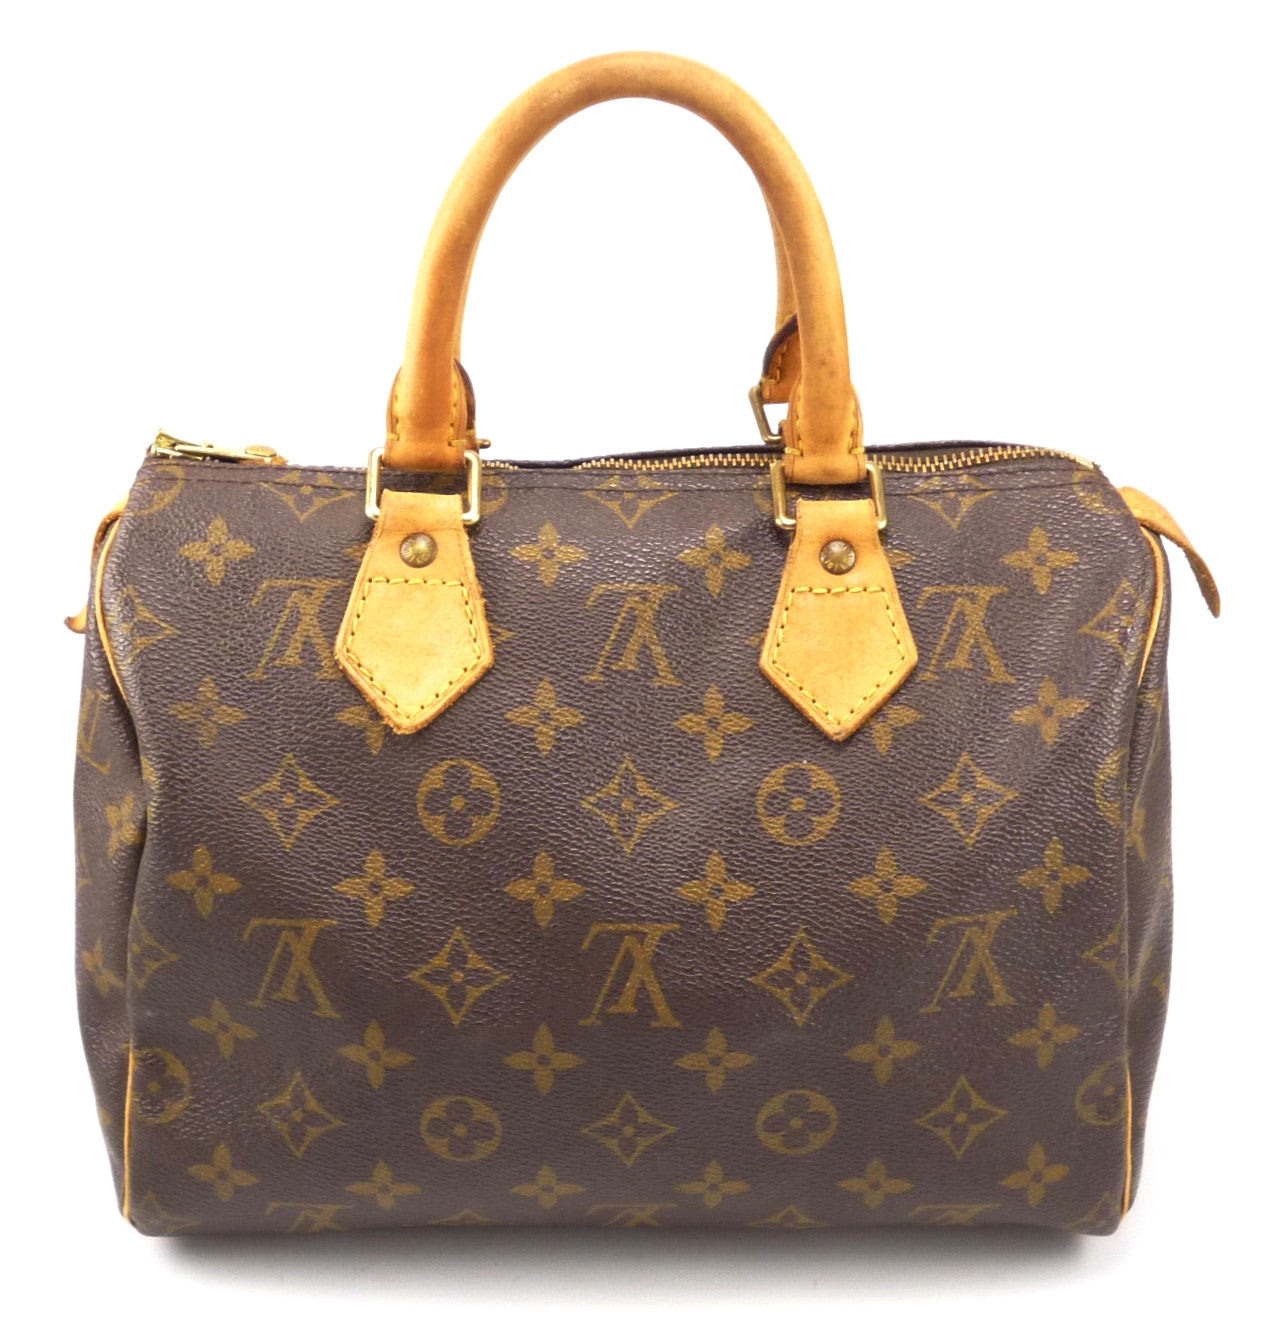 Louis Vuitton Authentic Monogram Speedy 25 Hand Bag